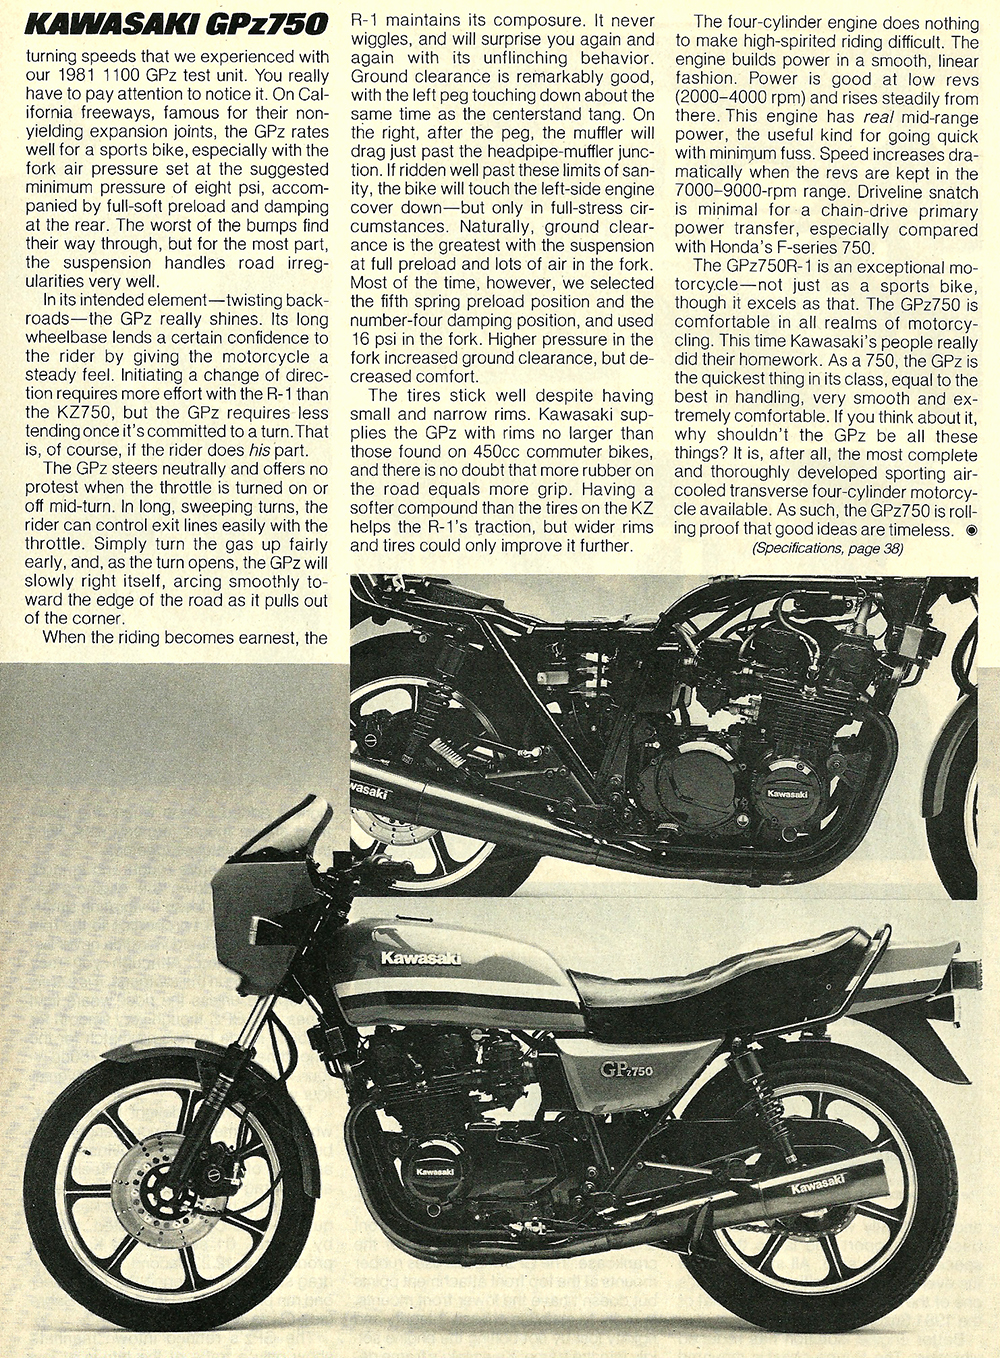 1982 Kawasaki Gpz750 road test 07.jpg